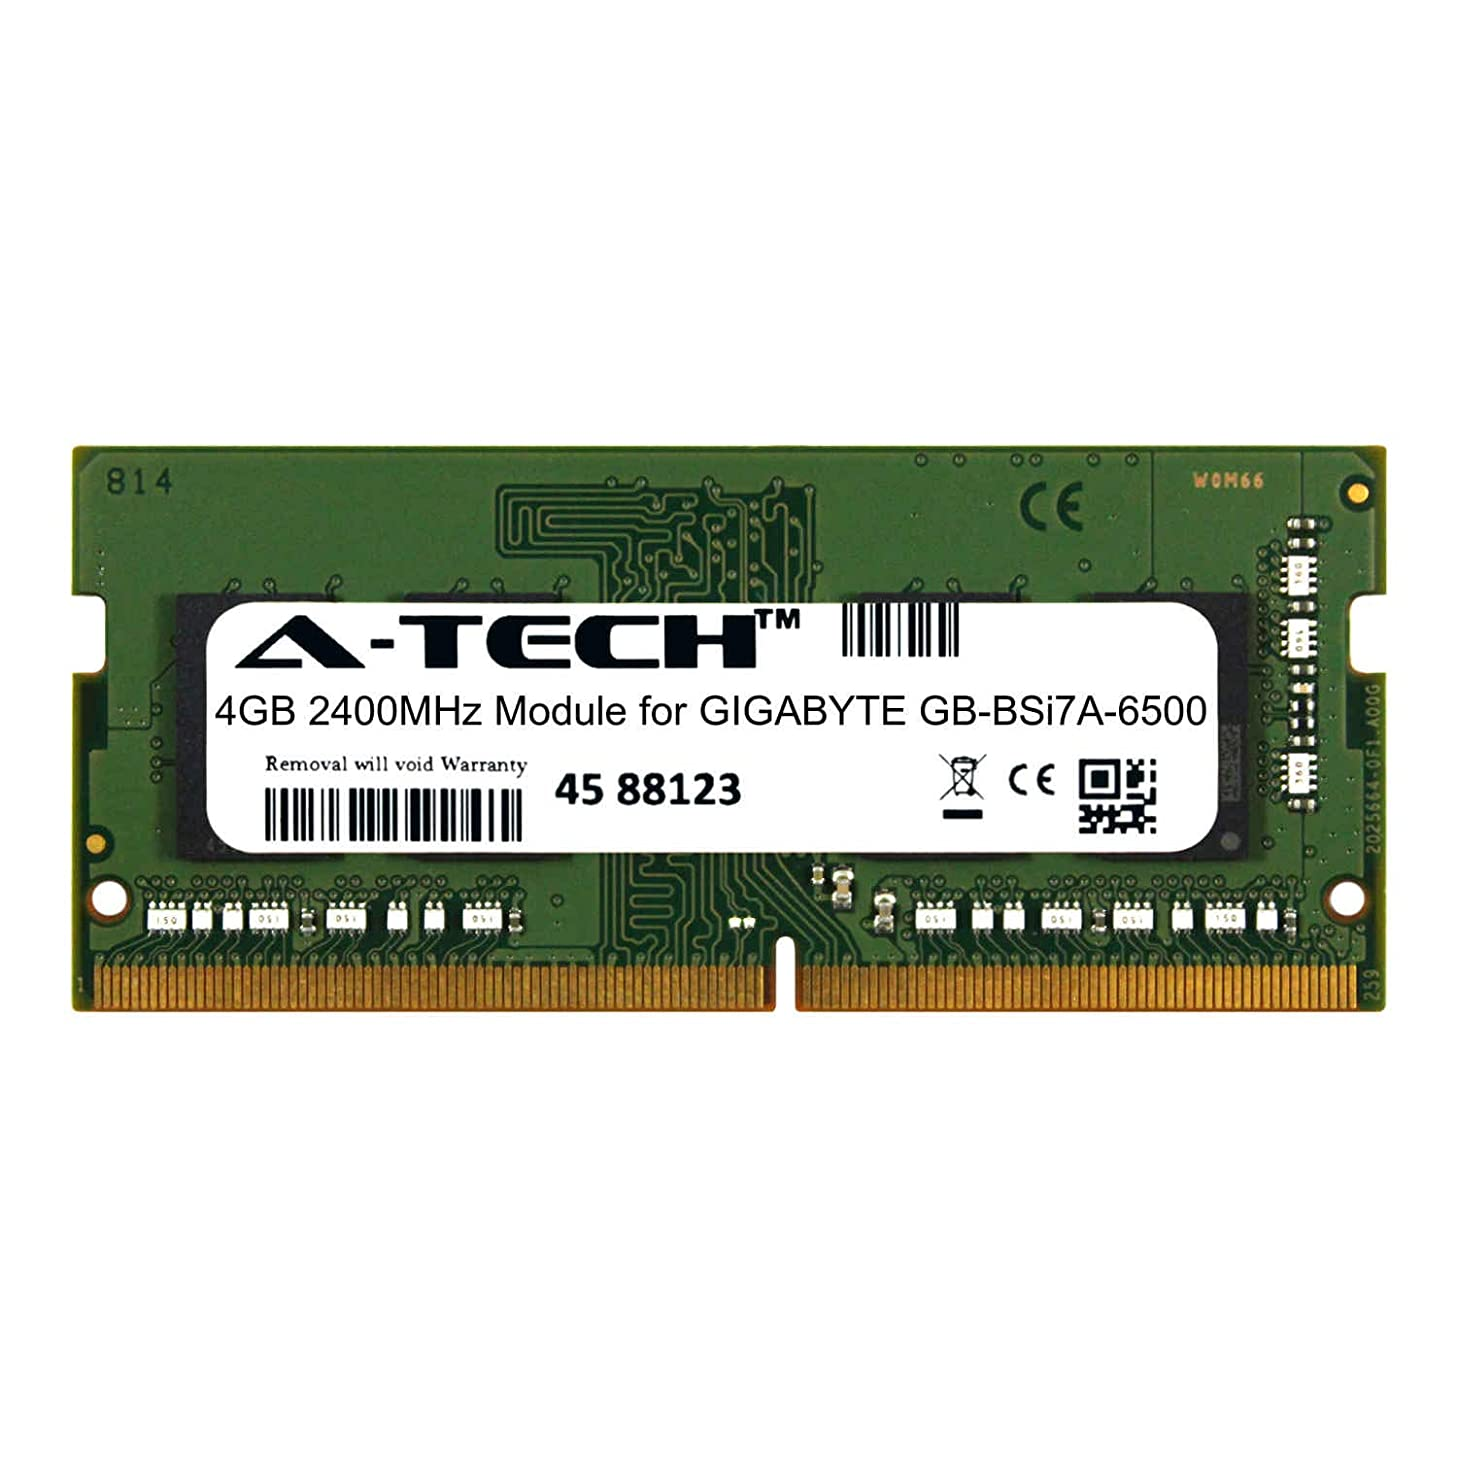 A-Tech 4GB Module for GIGABYTE GB-BSi7A-6500 Laptop & Notebook Compatible DDR4 2400Mhz Memory Ram (ATMS385215A25824X1)